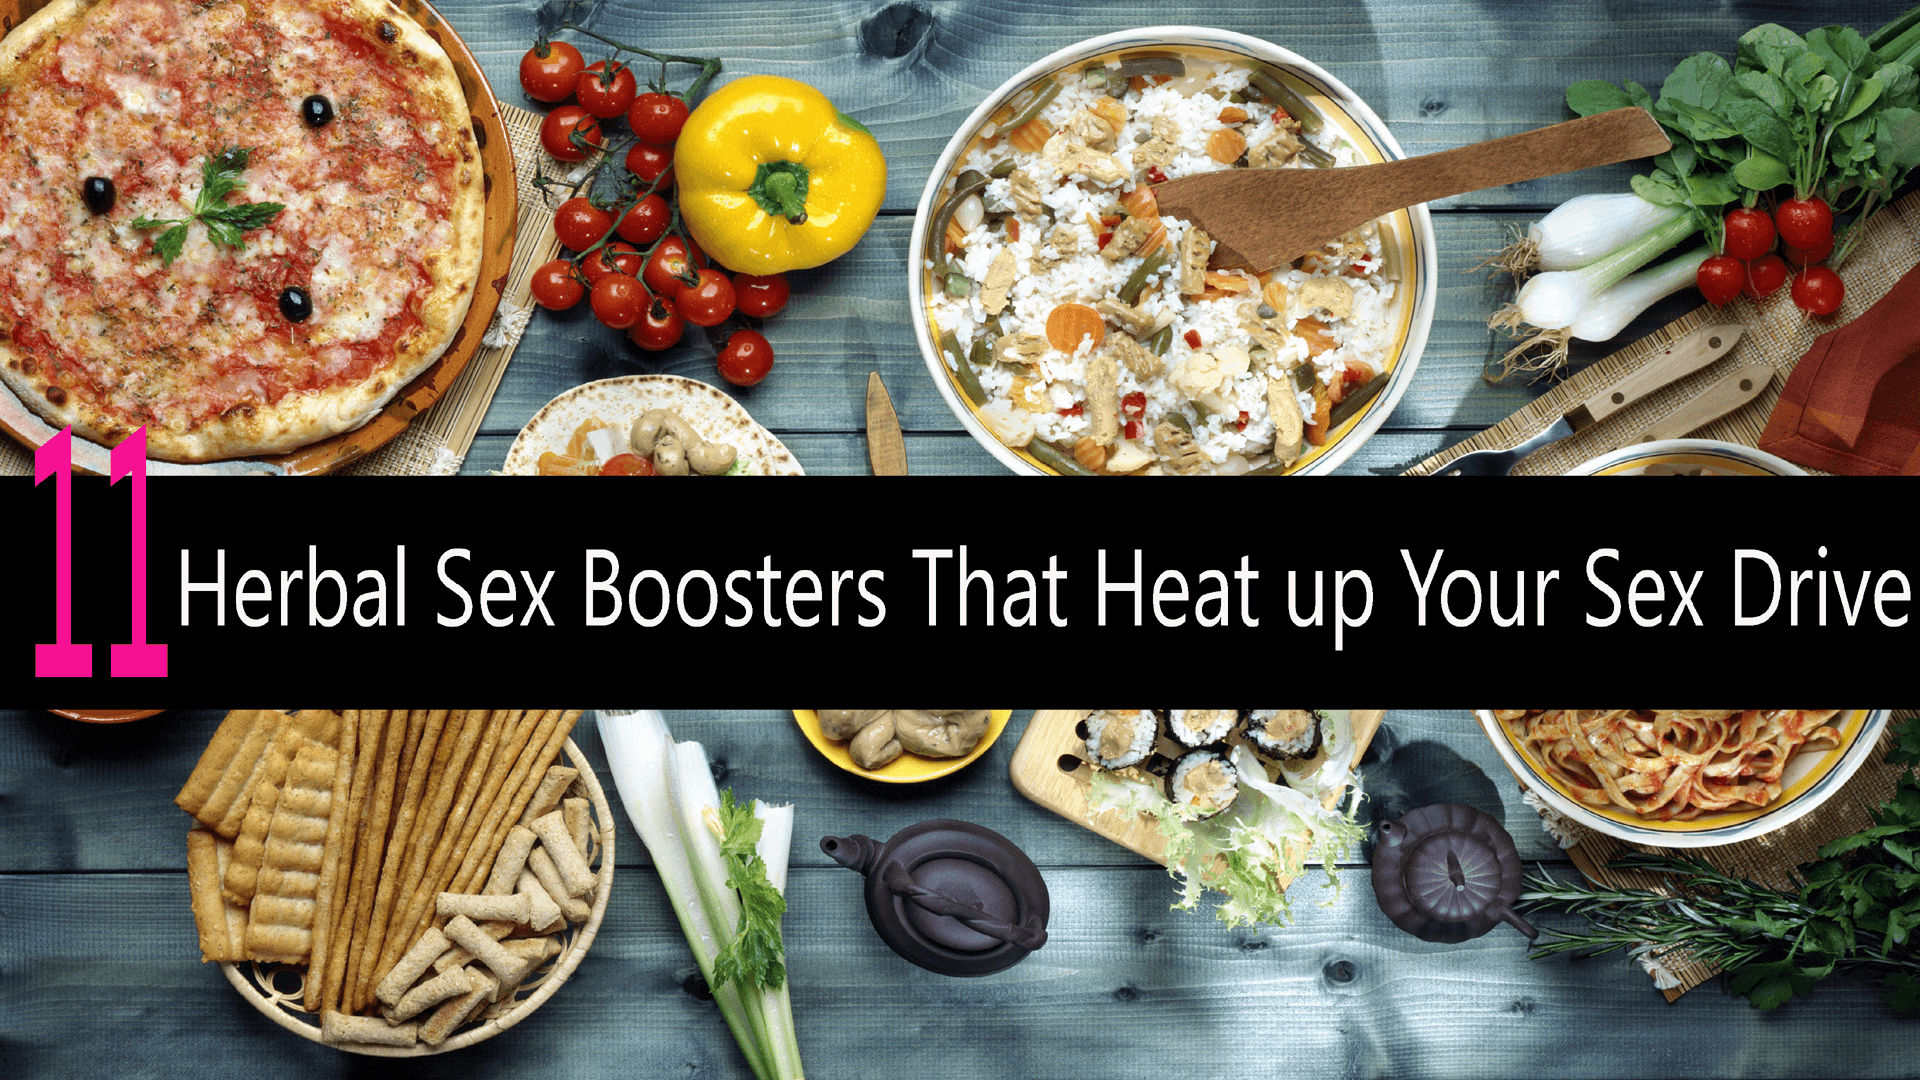 Herbal Sex Boosters That Heat up Your Sex Drive